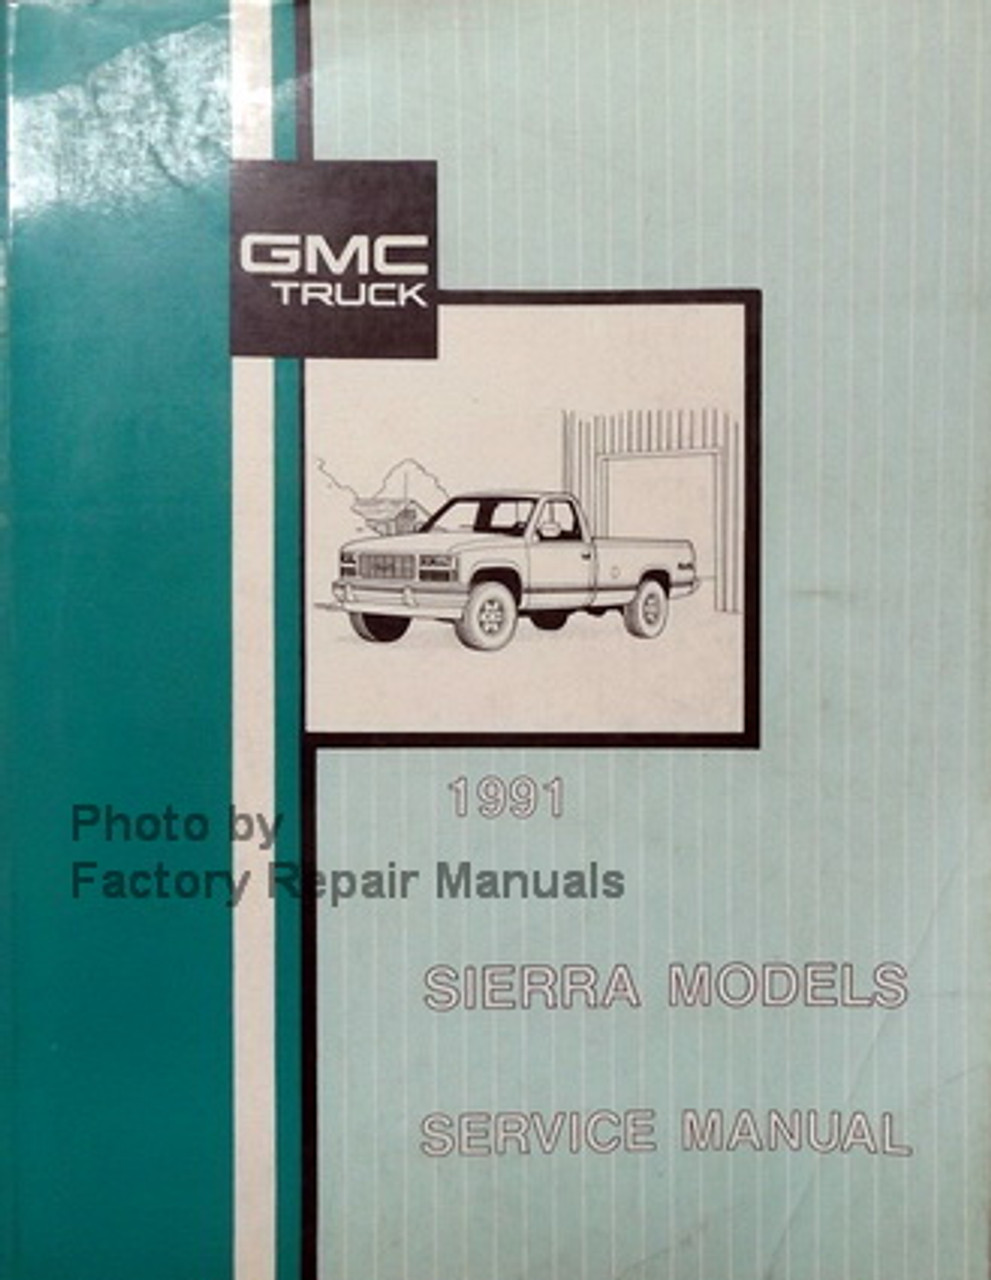 1991 gmc c k sierra pickup wiring diagram manual 1991 gmc sierra truck factory service manual original shop repair  1991 gmc sierra truck factory service